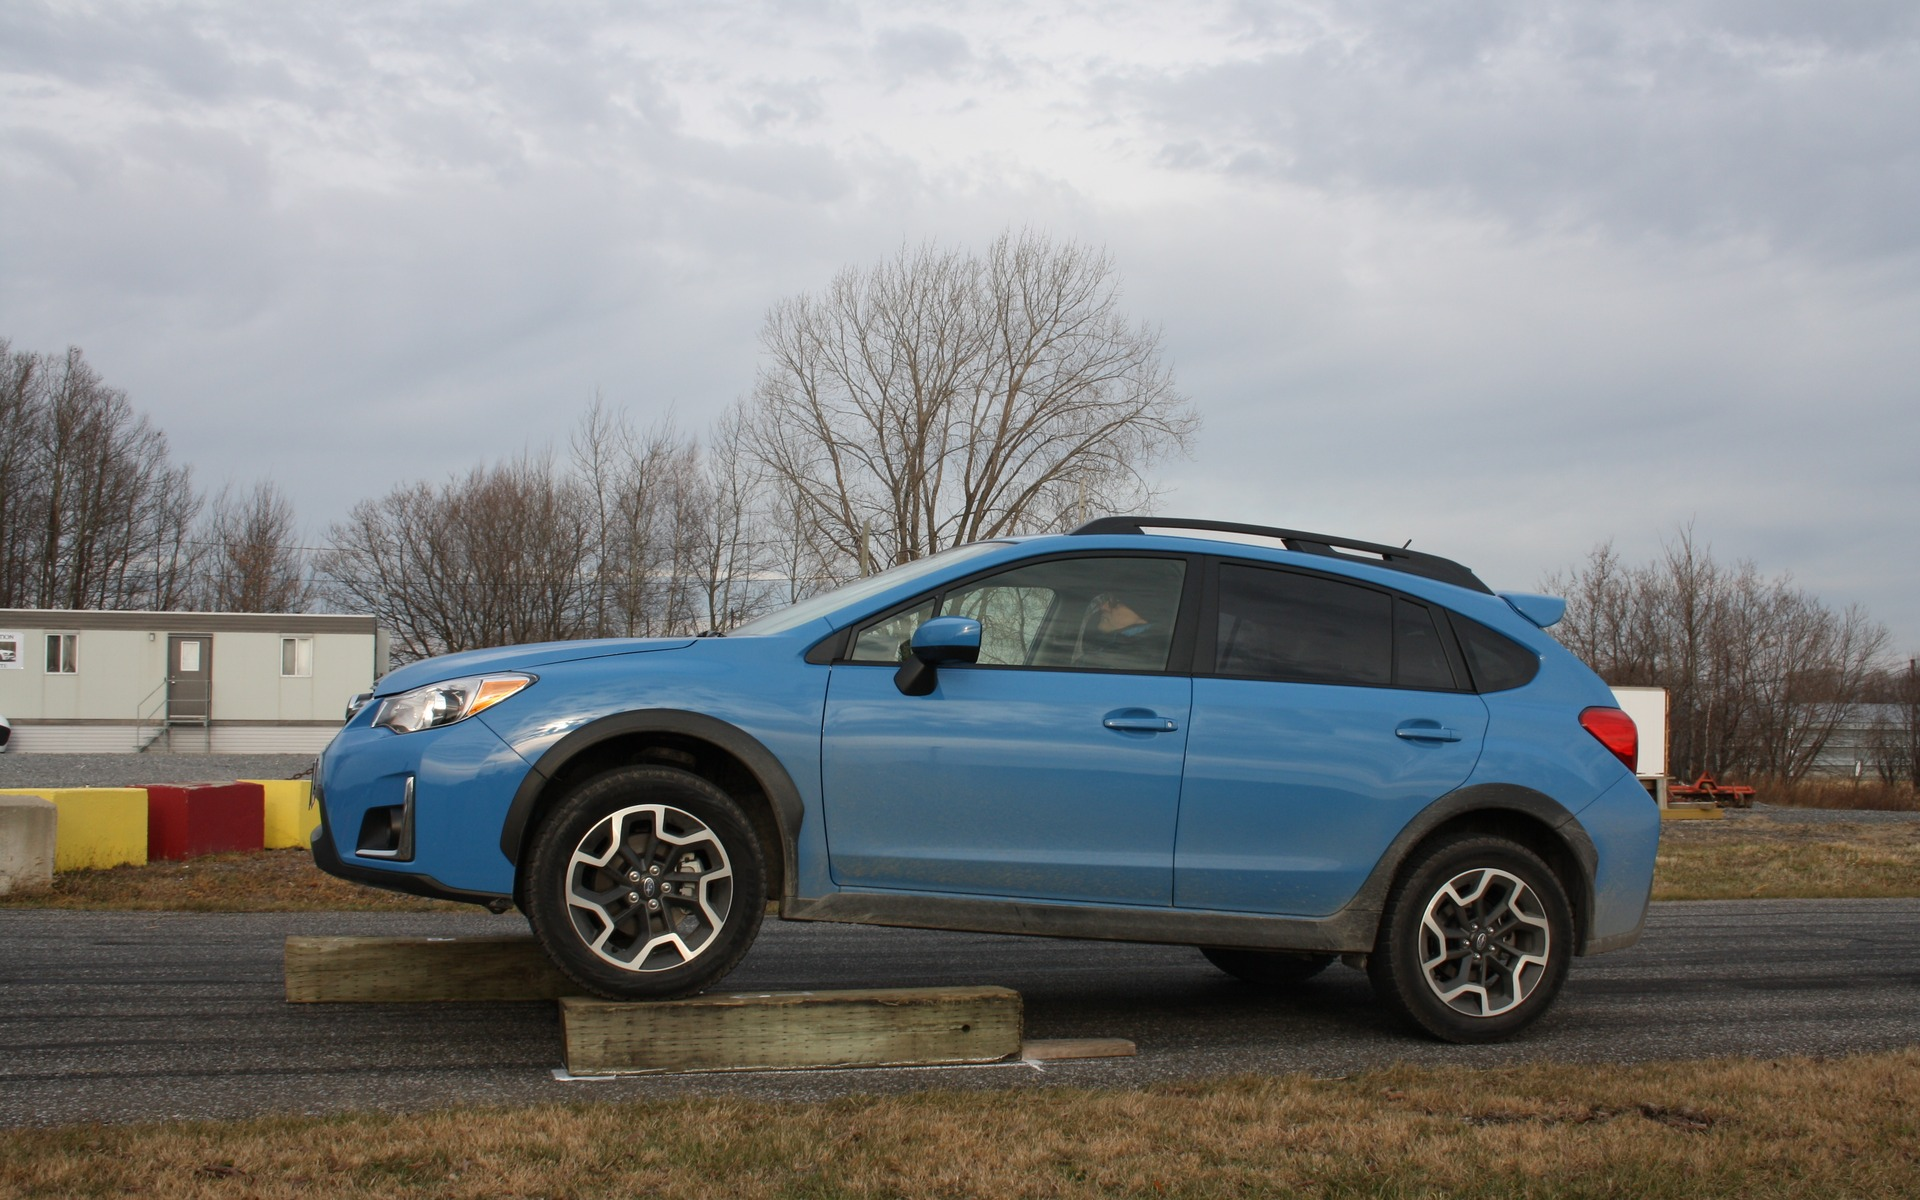 2016 Subaru Crosstrek Just Another Day At The Office 17 20